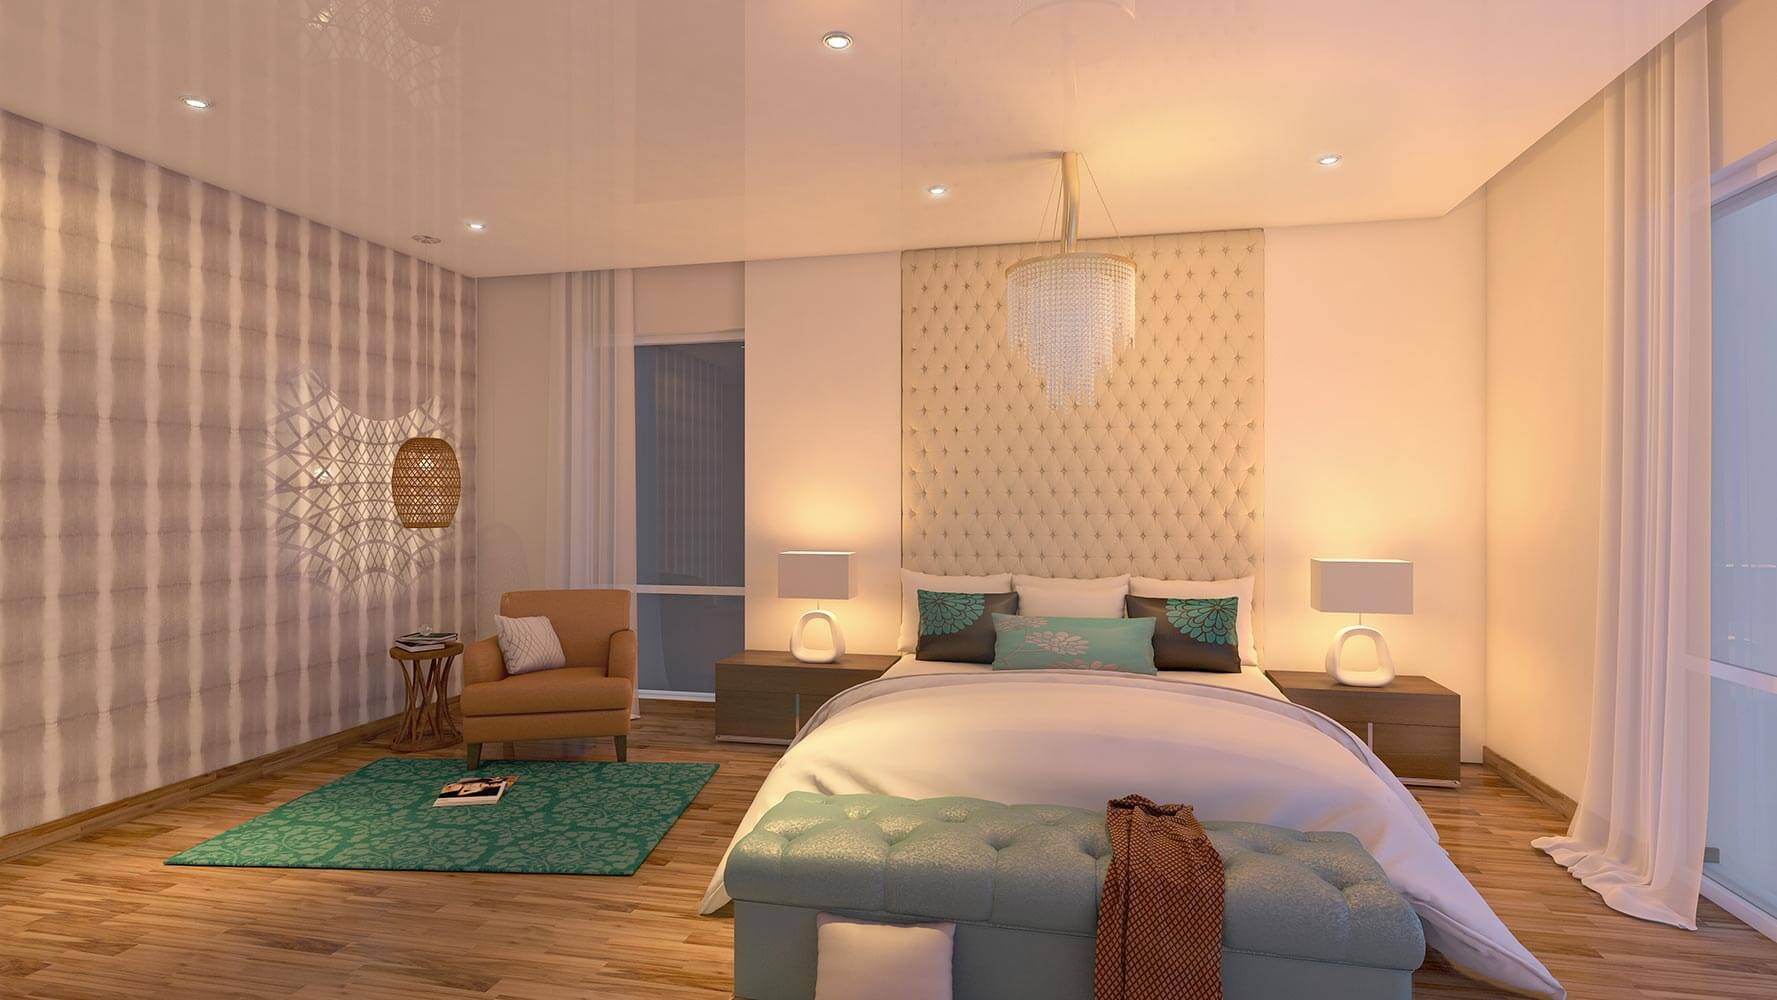 apartments in koregaon park pune